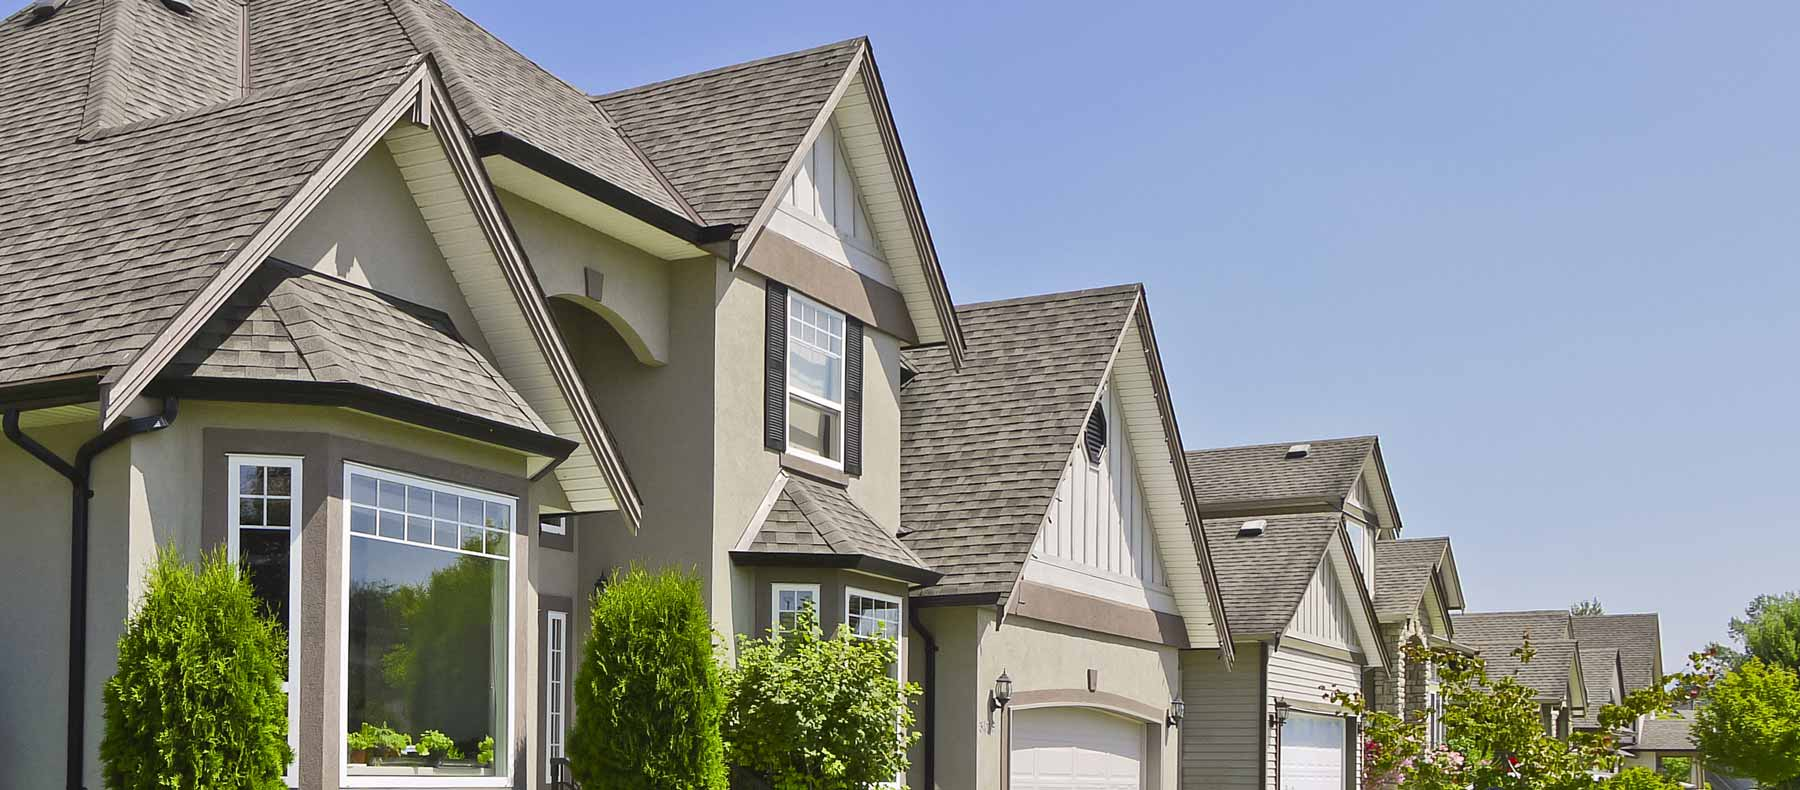 Most recommended roofers